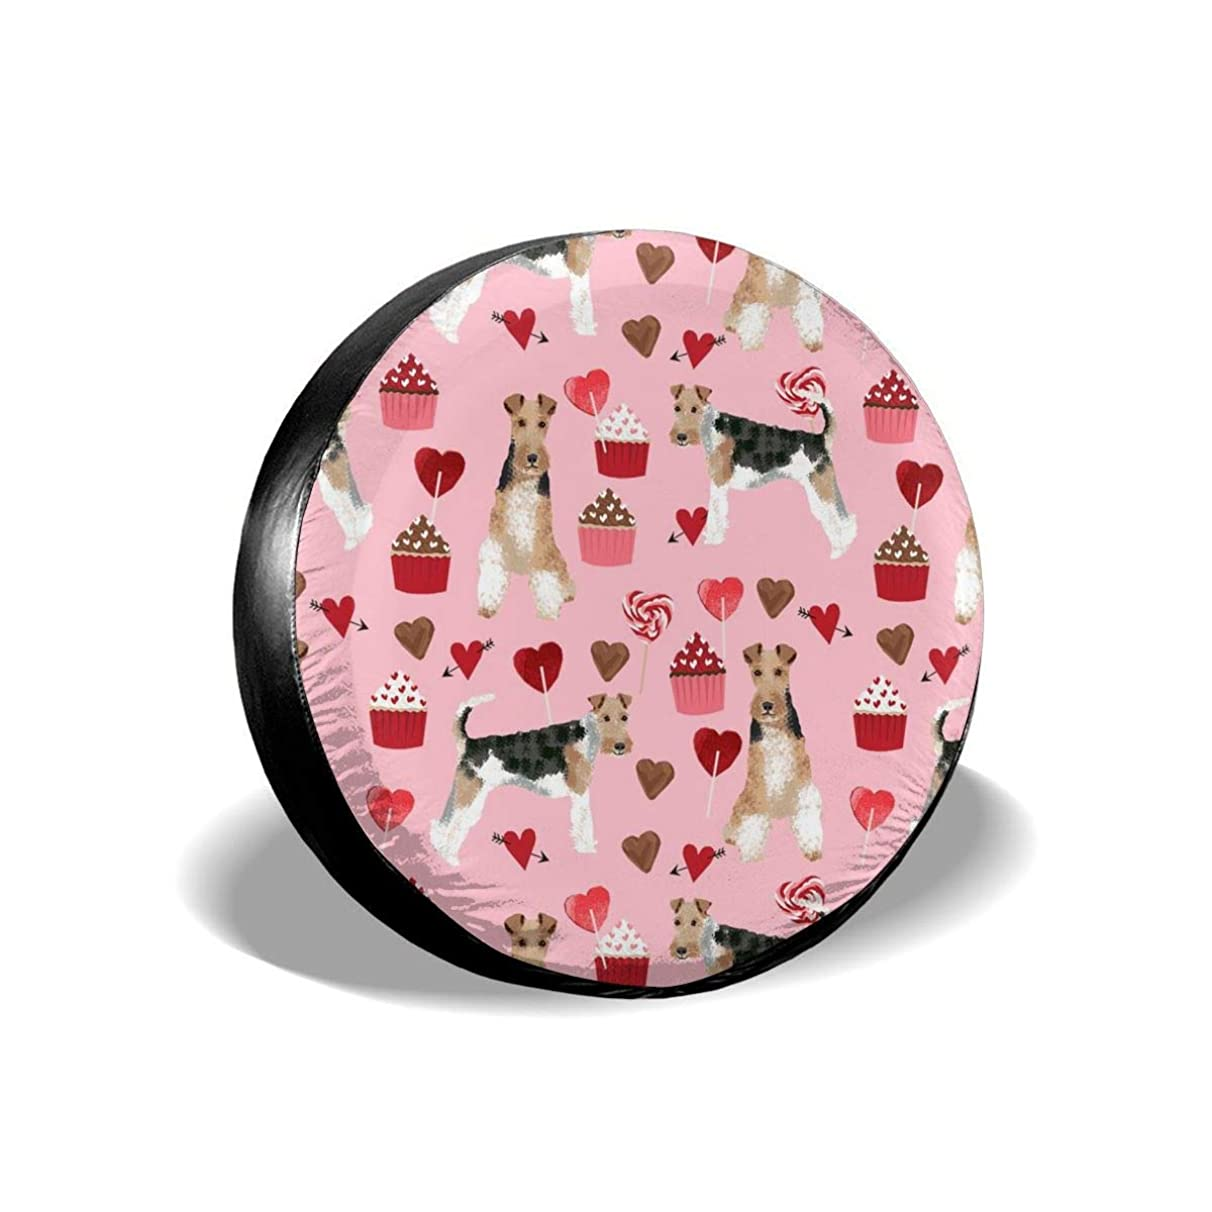 wire fox terrier valentines day cupcakes love hearts dog breed pink Polyester Universal Spare Wheel Tire Cover Wheel Covers Jeep Trailer RV SUV Truck Camper Travel Trailer Accessories(14,15,16,17 Inch